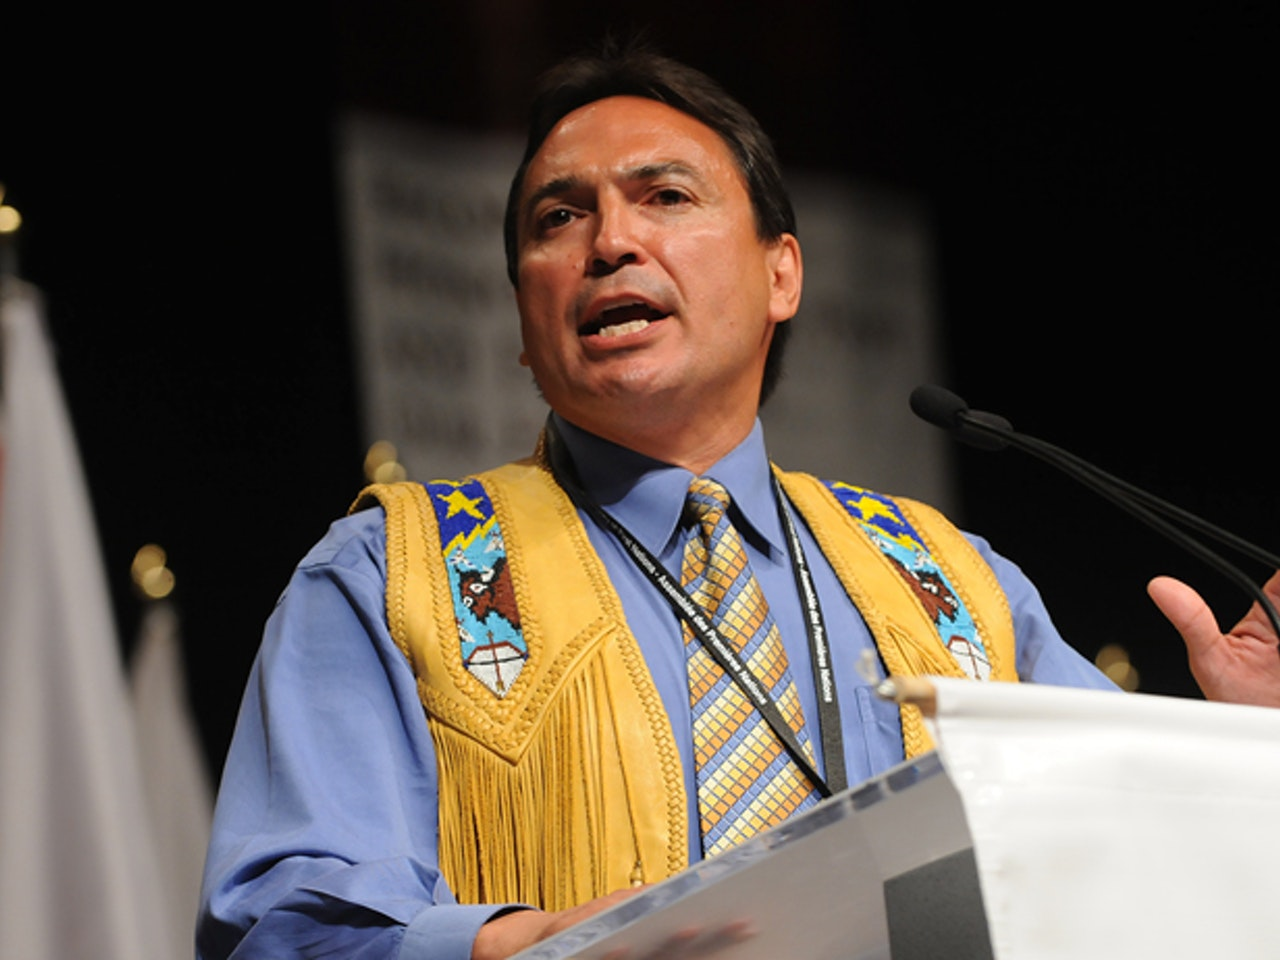 """Season 1 - """"Great Canadians"""" Series - National Chief Perry Bellegarde of the Assembly of First Nations - Entrevue """"Canadiens Exceptionnels"""" avec Chef Bellegarde de l'APN"""